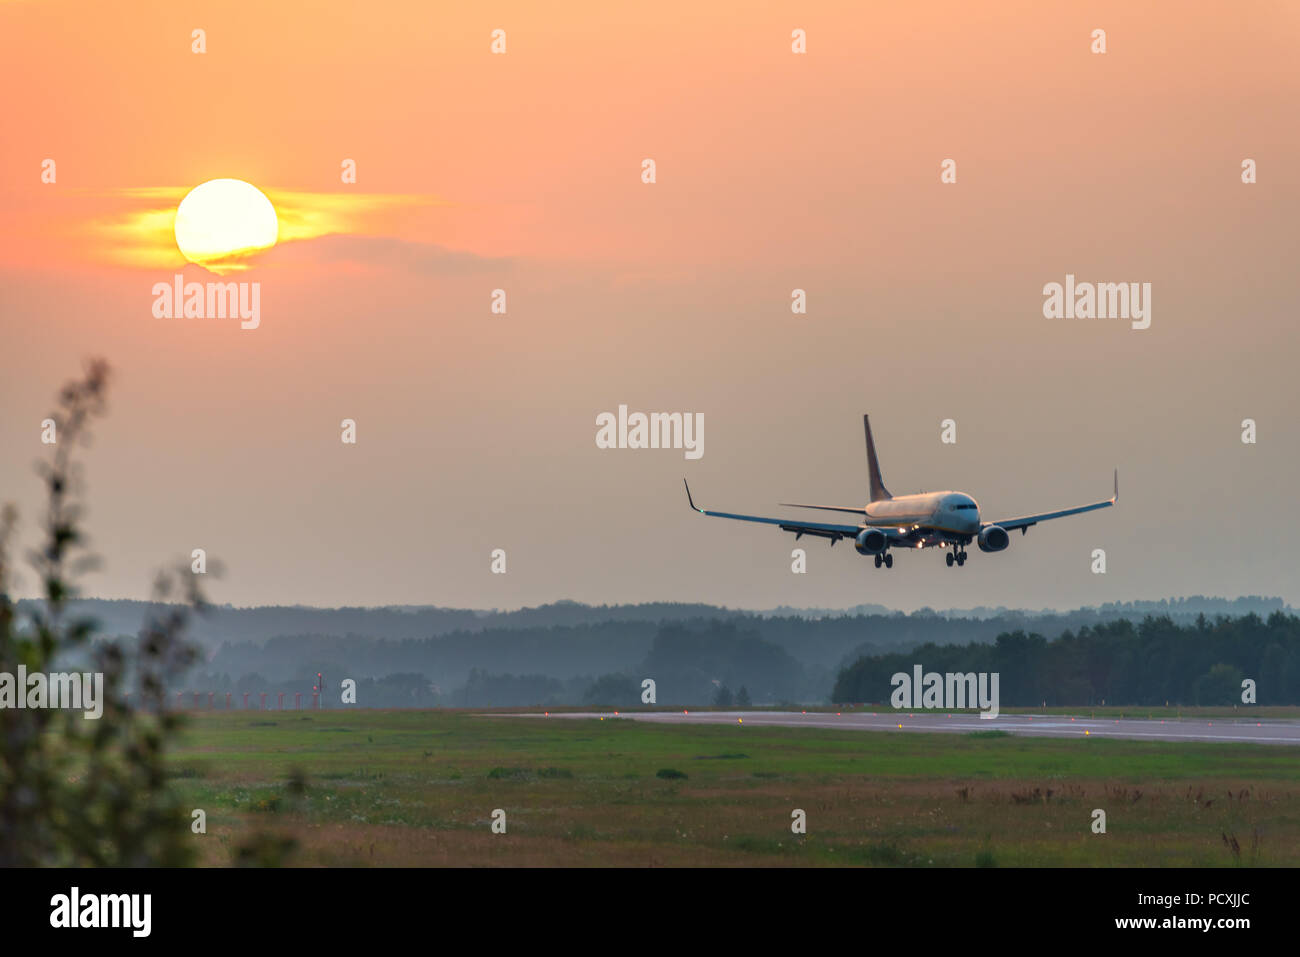 A plane approaches the airport during sunset. - Stock Image